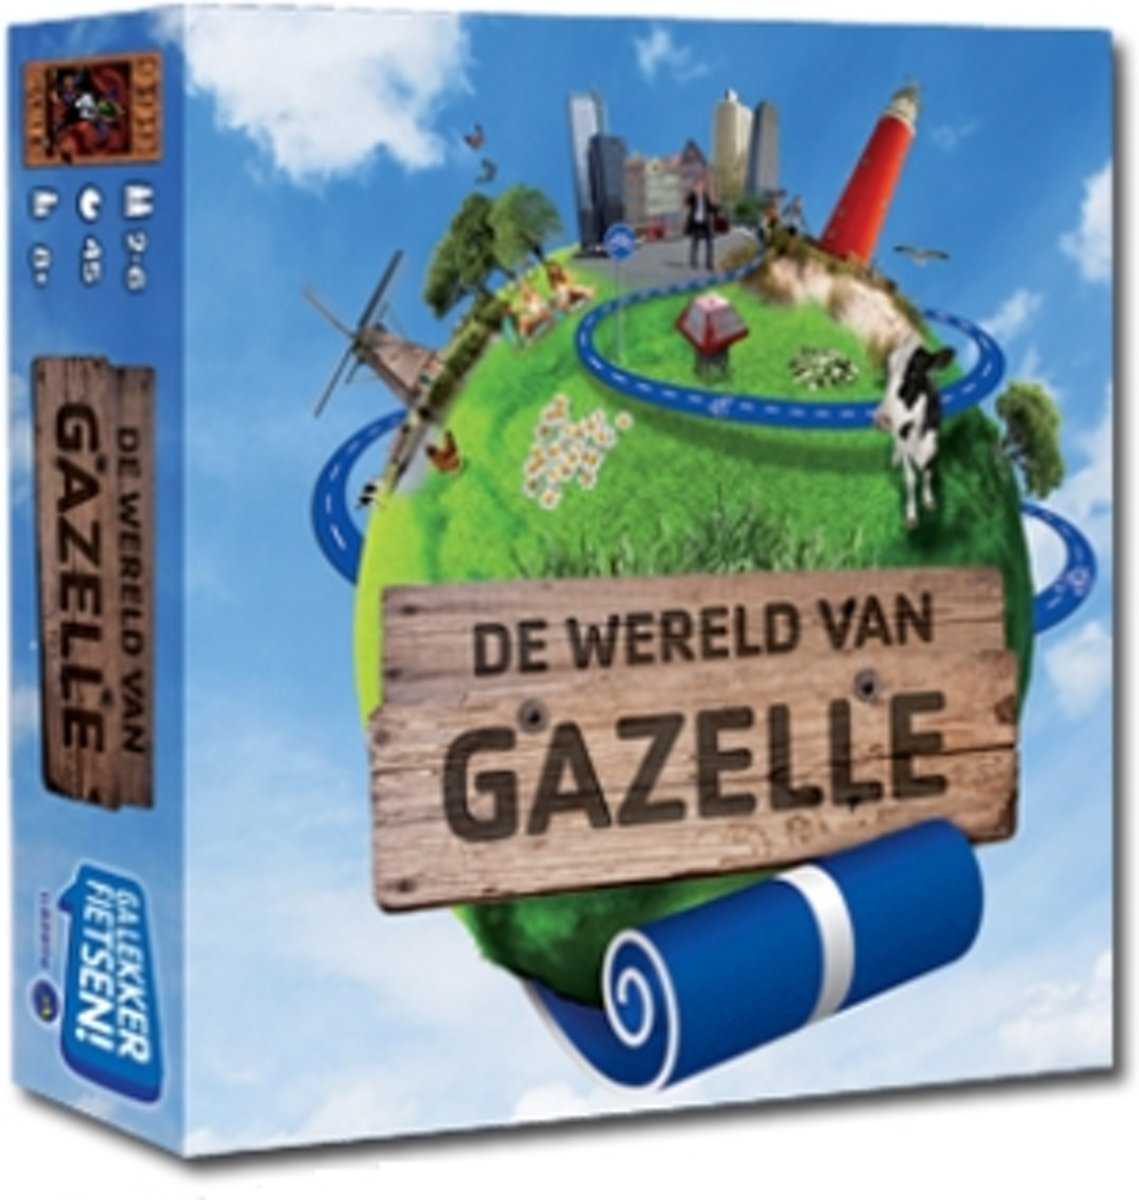 Gazelle Spel Bordspel